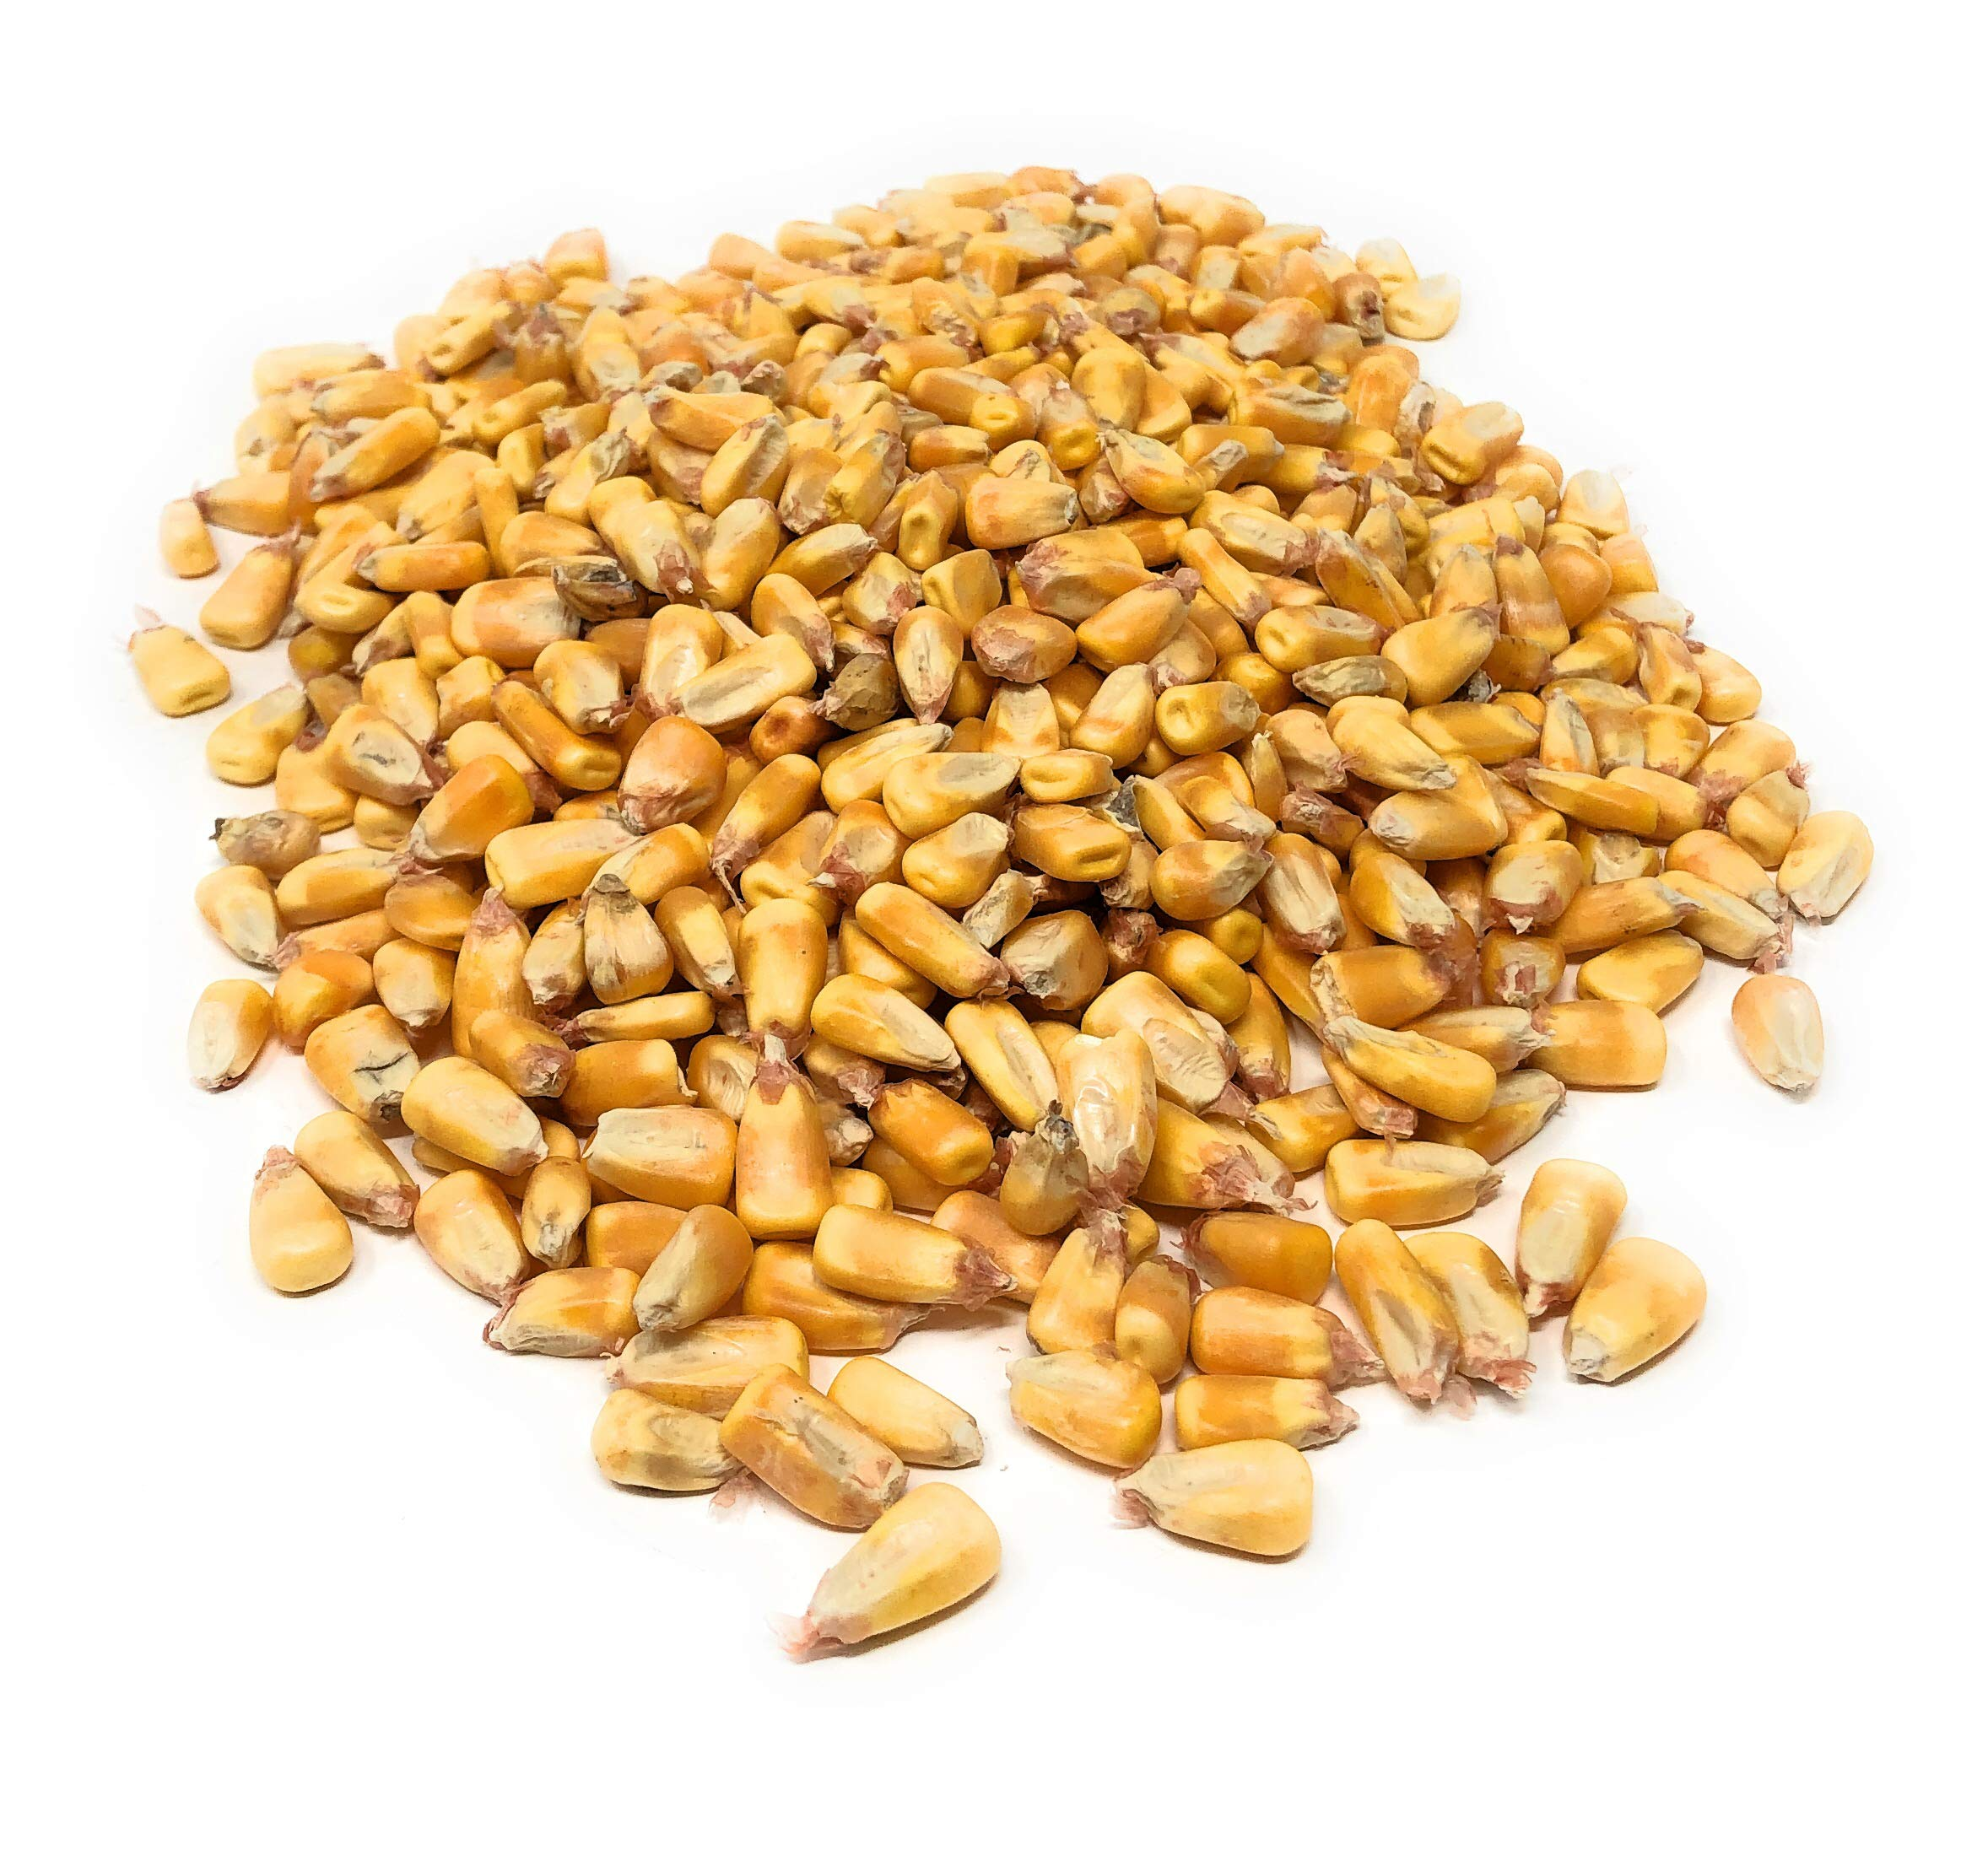 Bulk Iowa Feed Corn from 2018 Crop - Great for Wildlife - Feed Deer, Squirrels, Birds - Make Cornhole bags or use for Crafts and Games - Can be Distilled or Used in Corn Furnace/Heater (500 POUNDS!) by Soyboyz (Image #1)